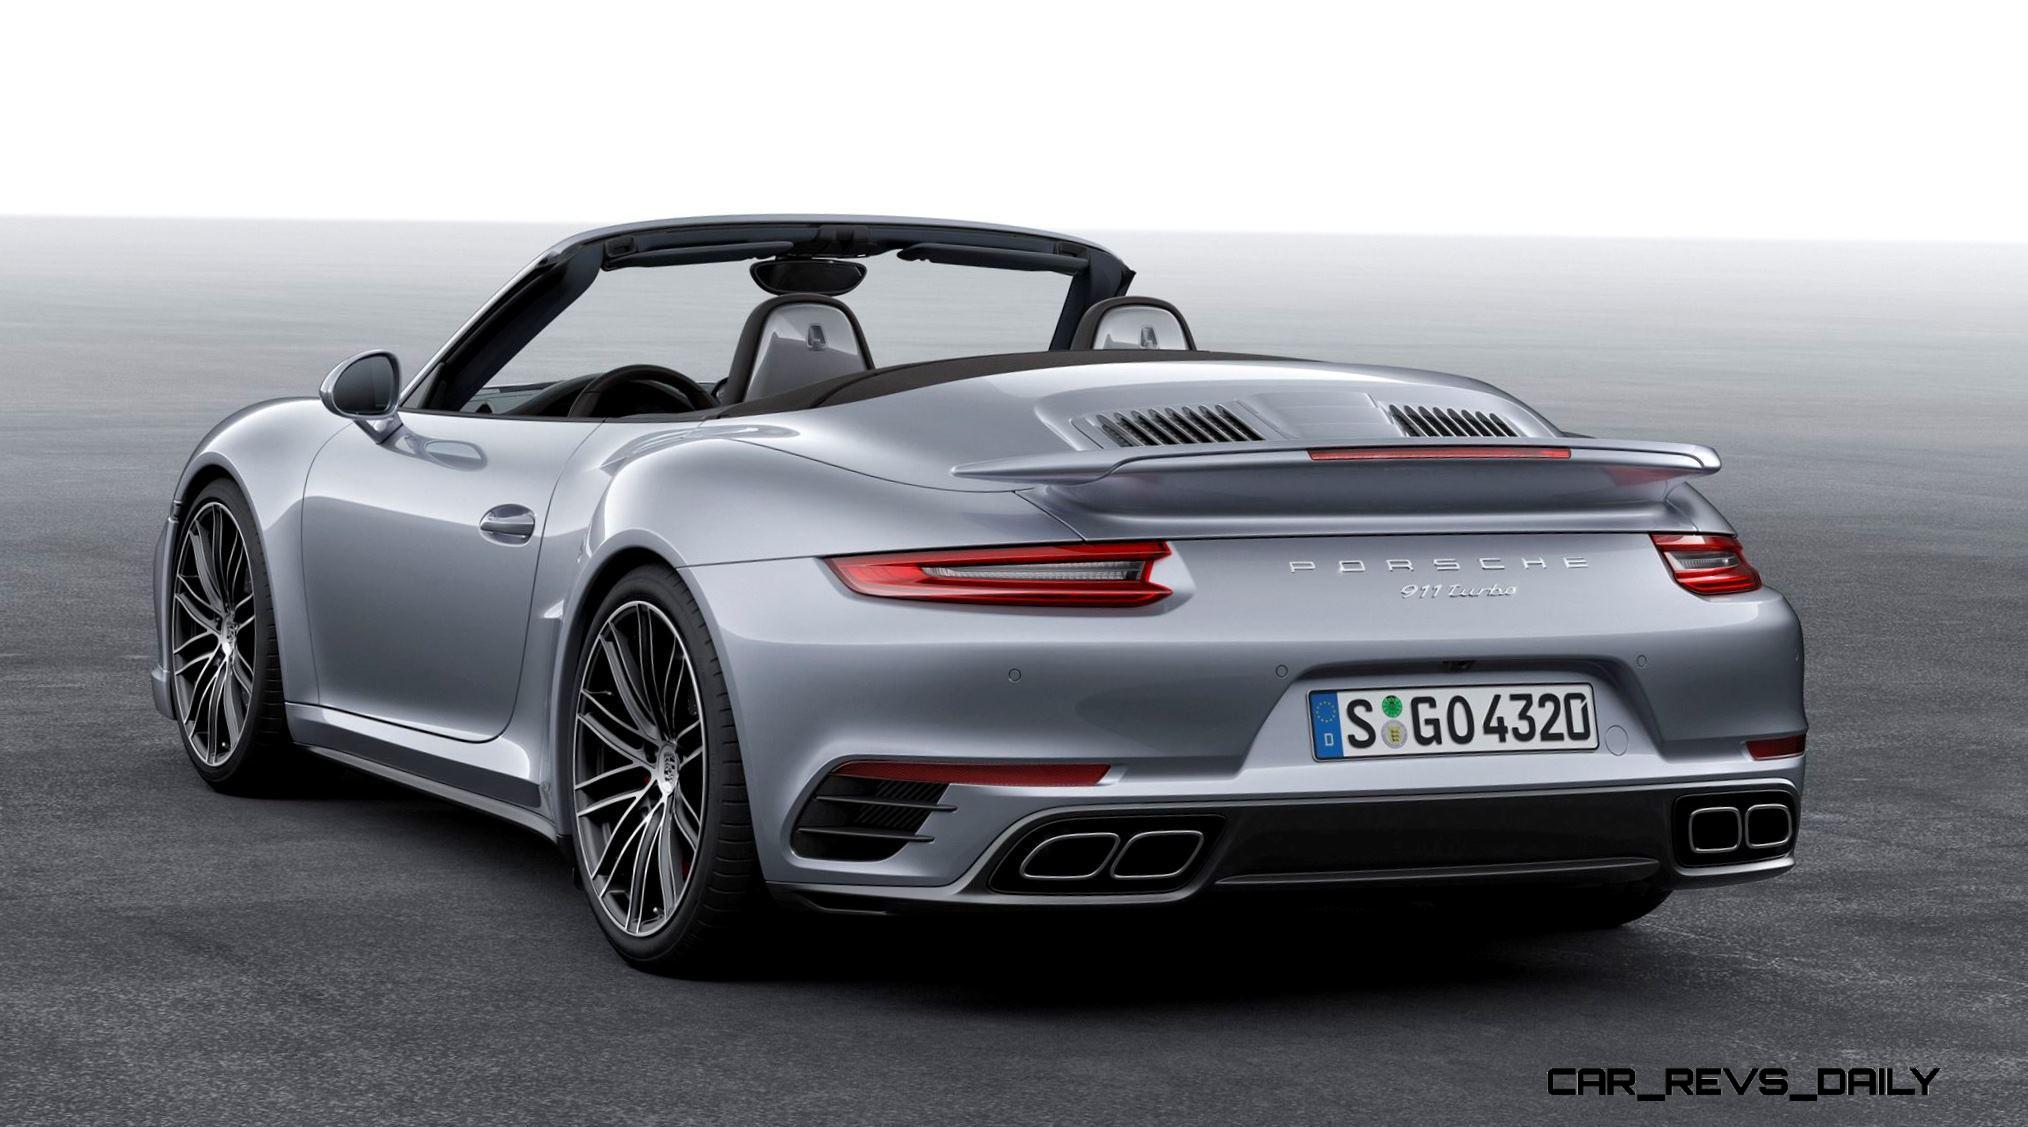 Elegant 25s 215MPH 2017 Porsche 911 Turbo S Revealed  New Anti